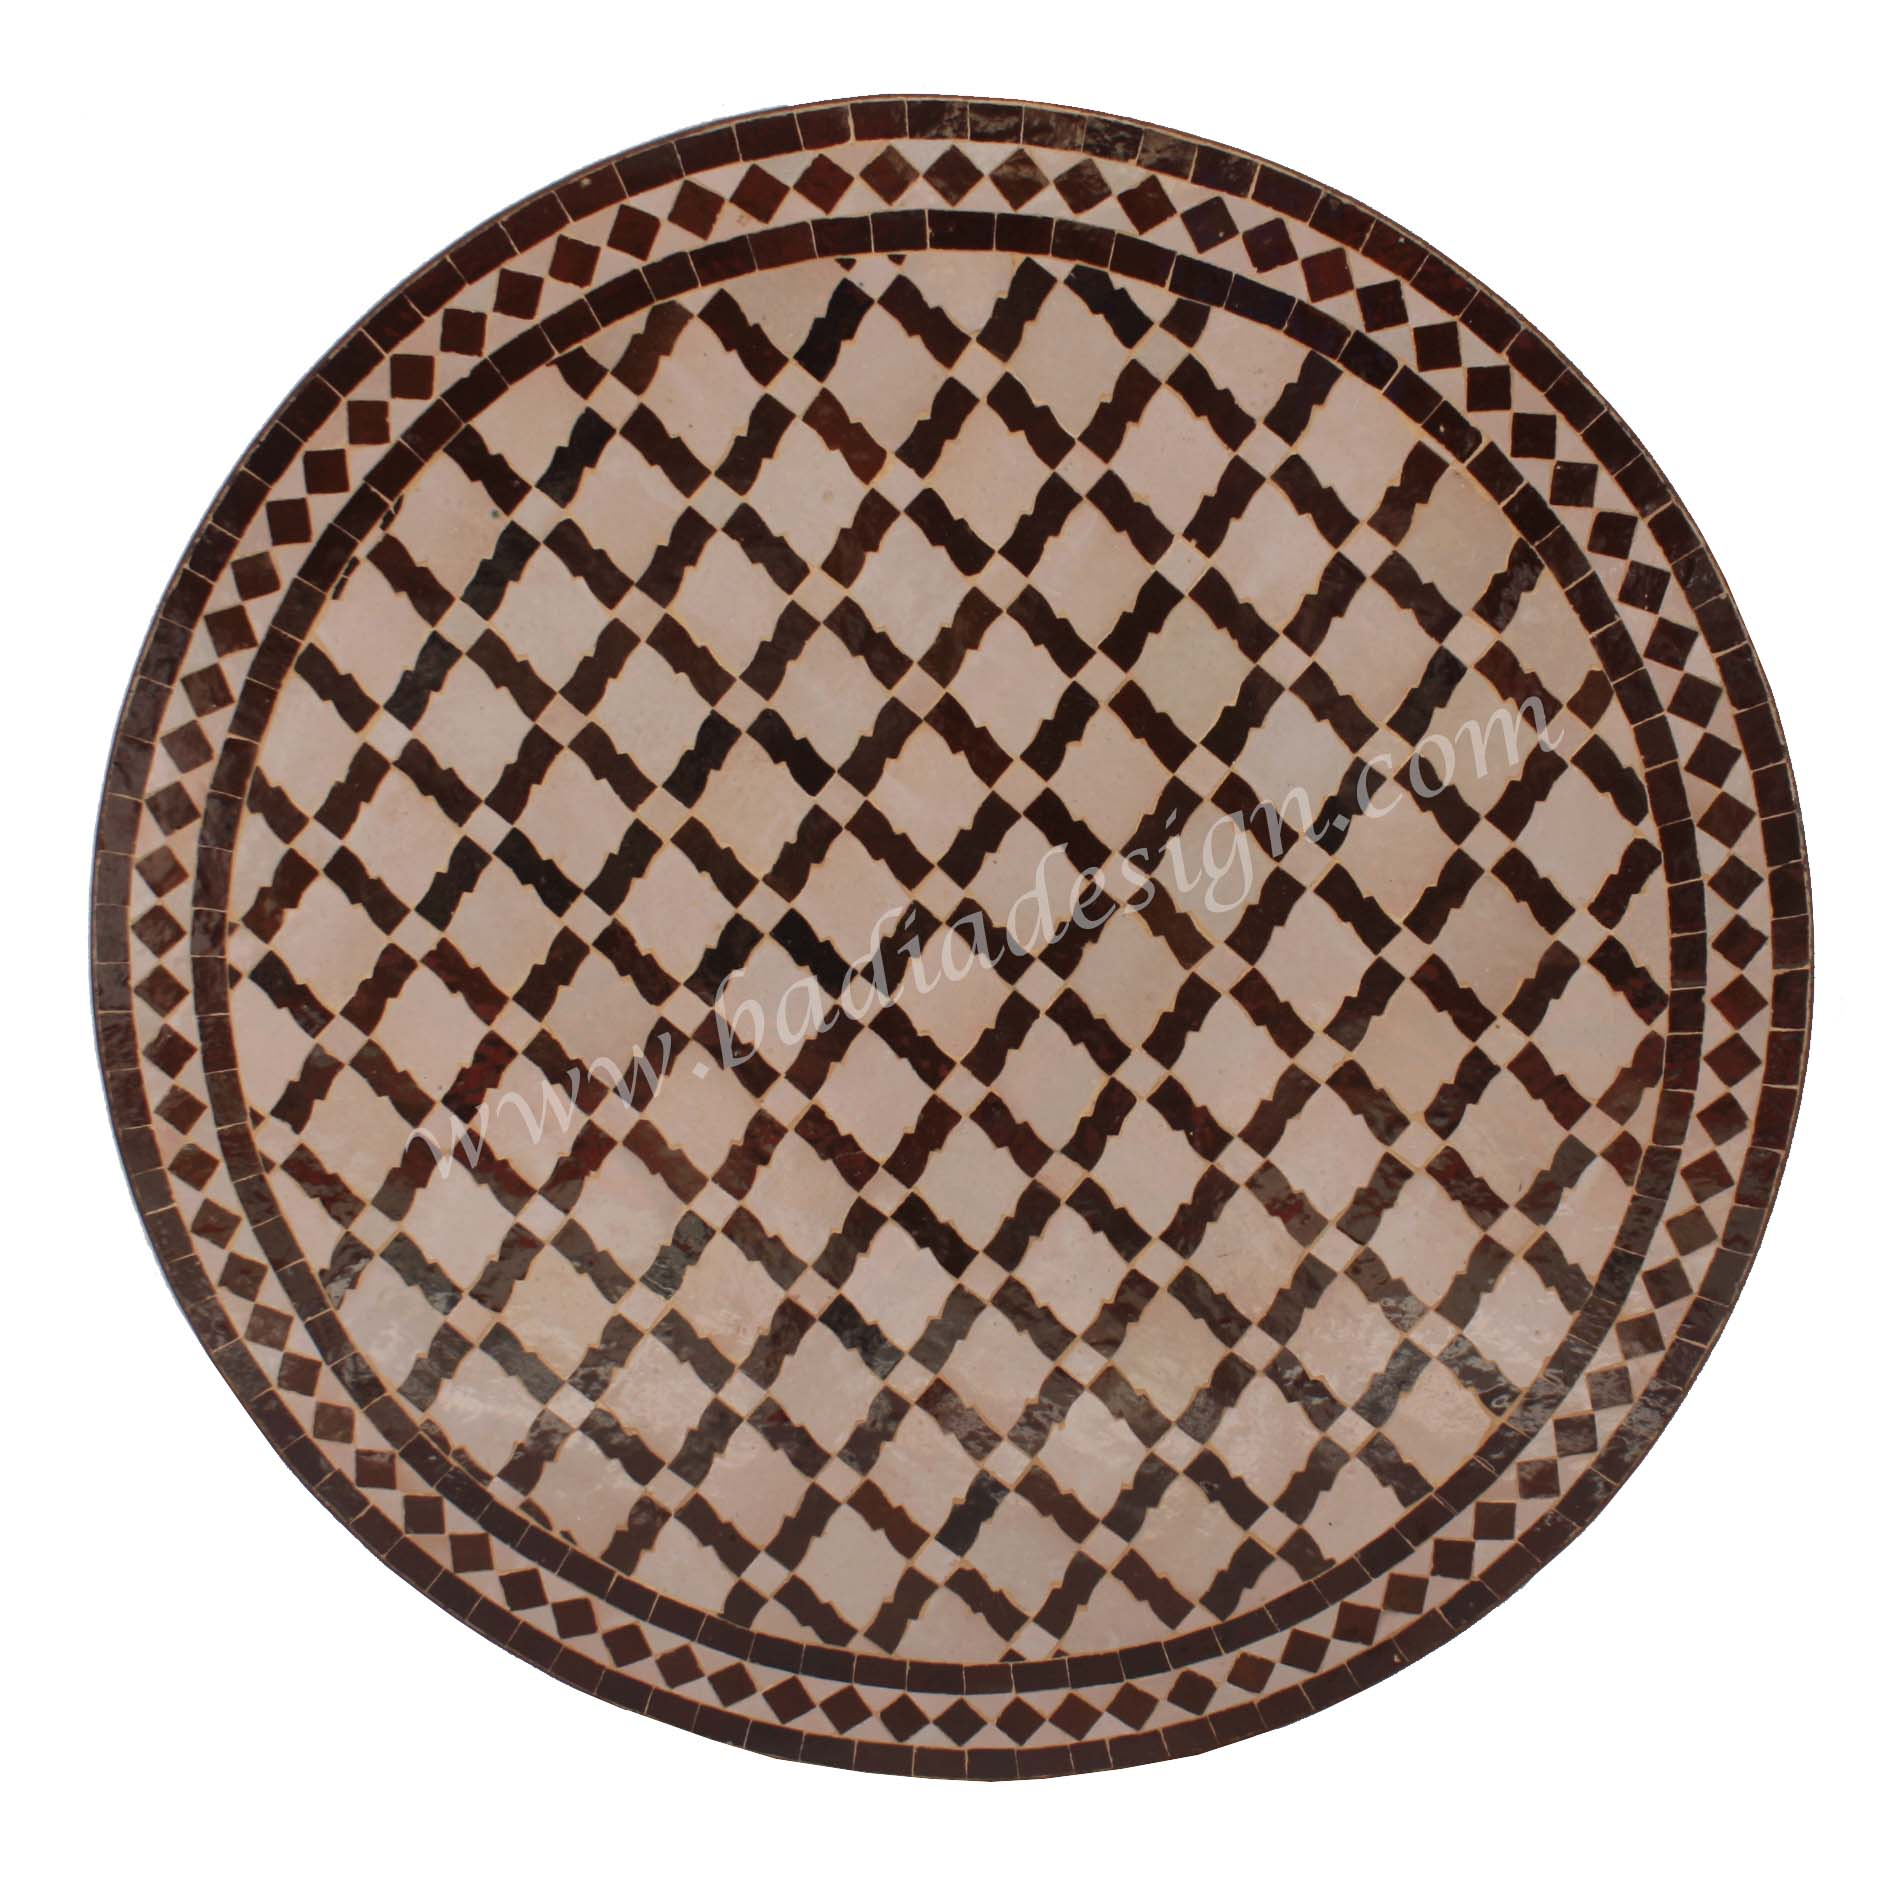 moroccan-ceramic-tile-table-top-mtr247.jpg